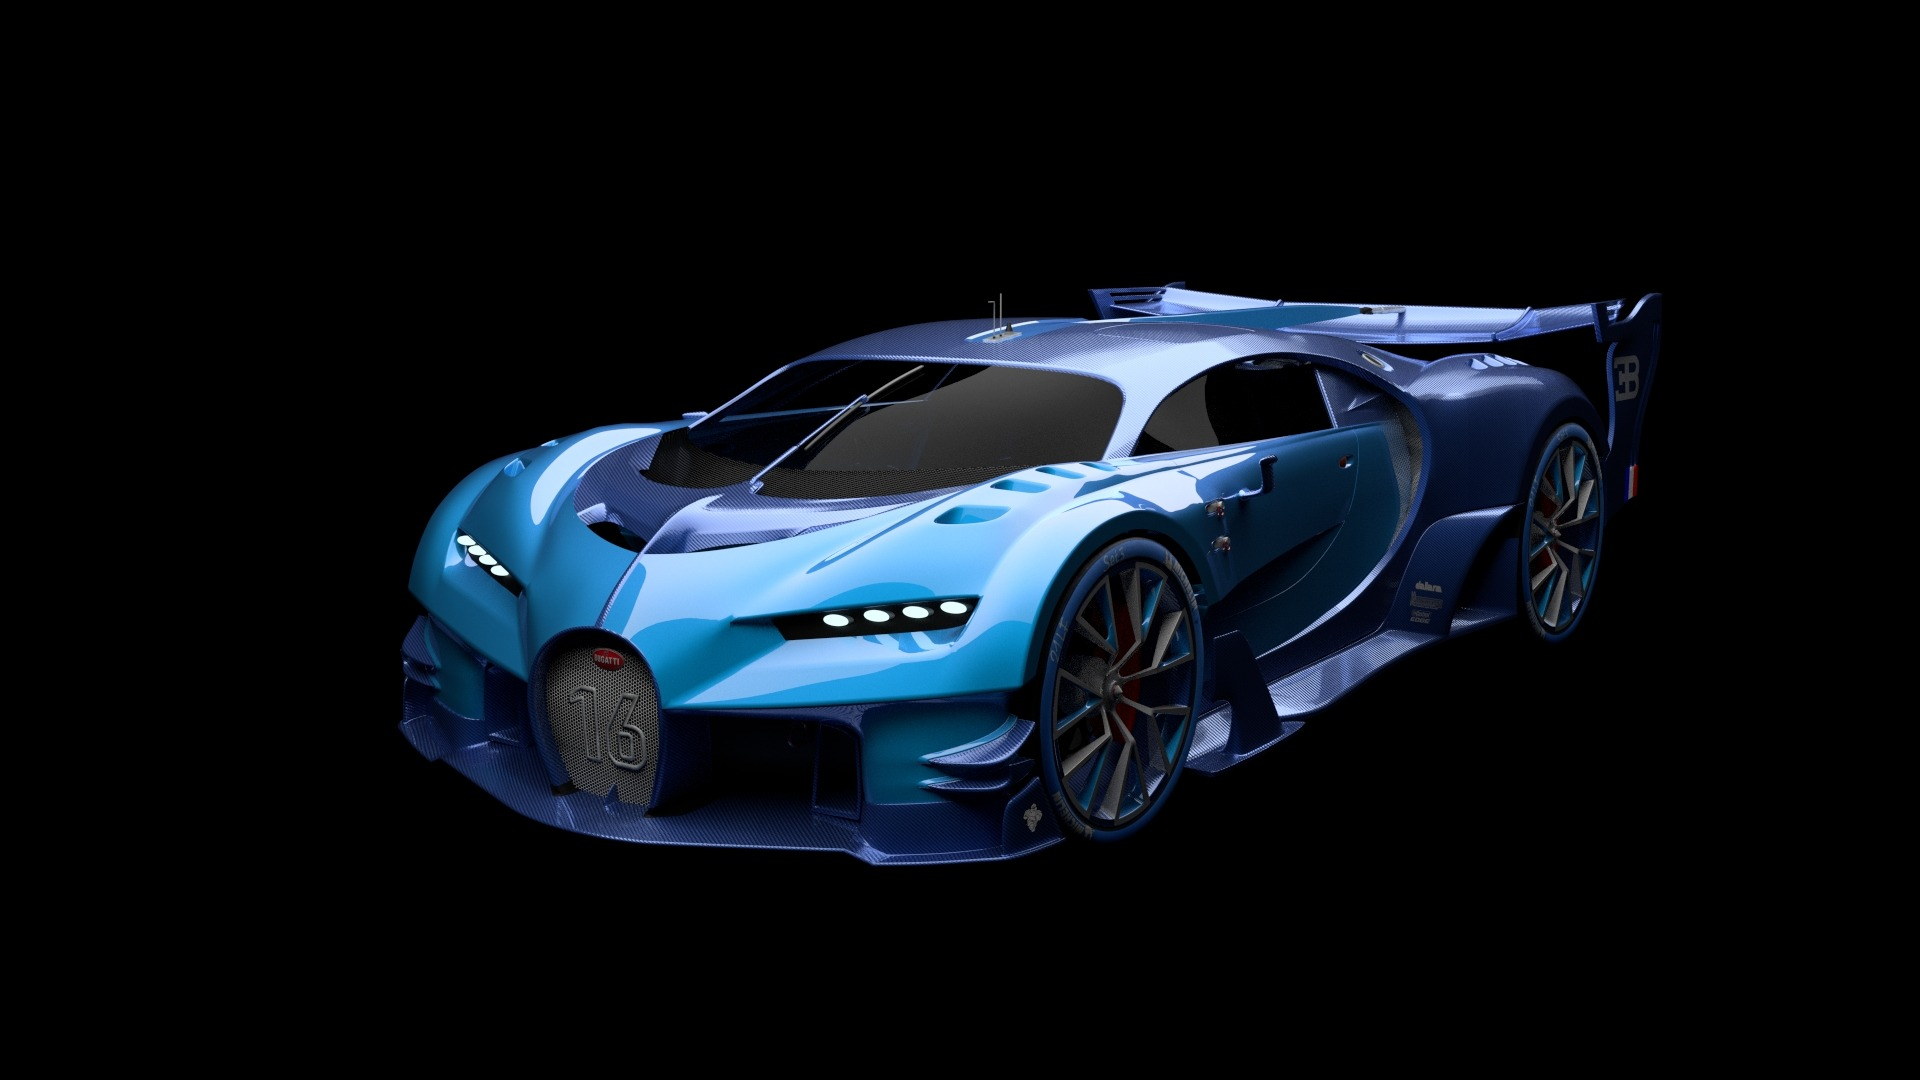 bugatti gt vision with Bugatti Vision Gt on Bugatti Chiron Vision Gran Turismo Prix Achat 1507179 further 2018 vision mercedes maybach 6 cabriolet 2 4k Wallpapers together with Mercedes Benz Vision Eq Silver Arrow An Insight Into Future Designs moreover Bugatti Vision Gt 112 further 2016 mansory mercedes amg gt s Wallpapers.